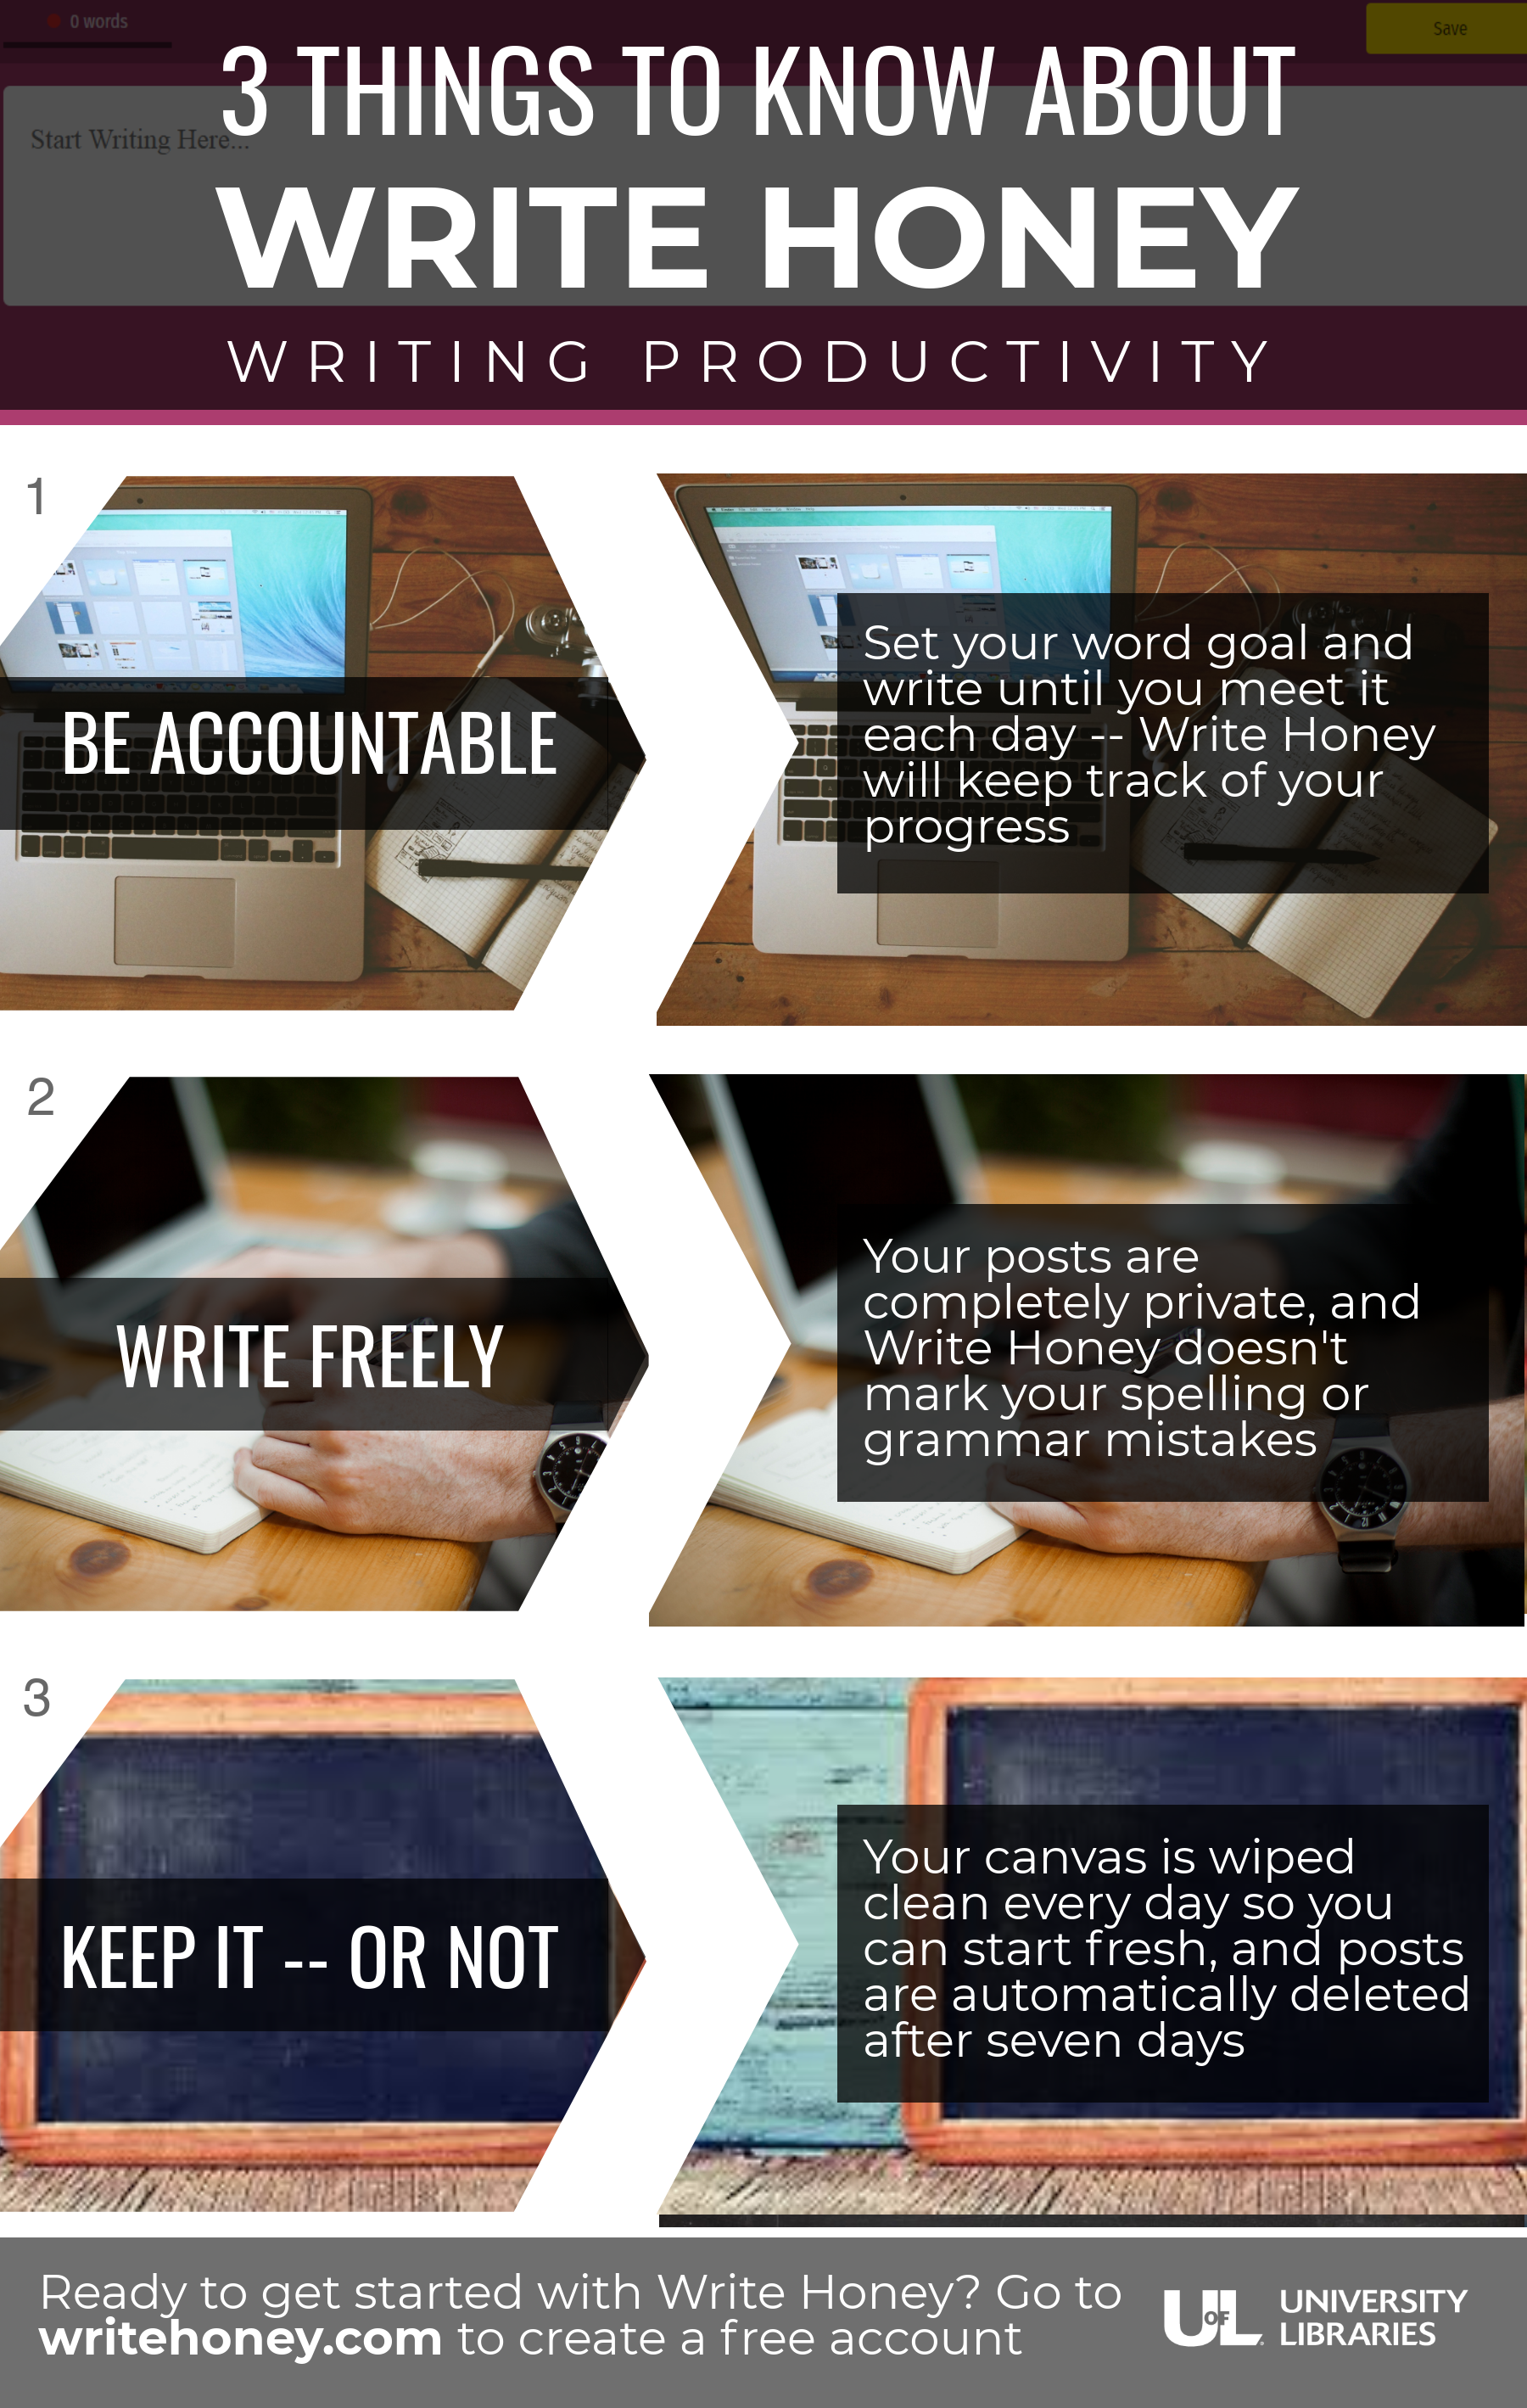 3 Things to Know about Write Honey – Writing Productivity.